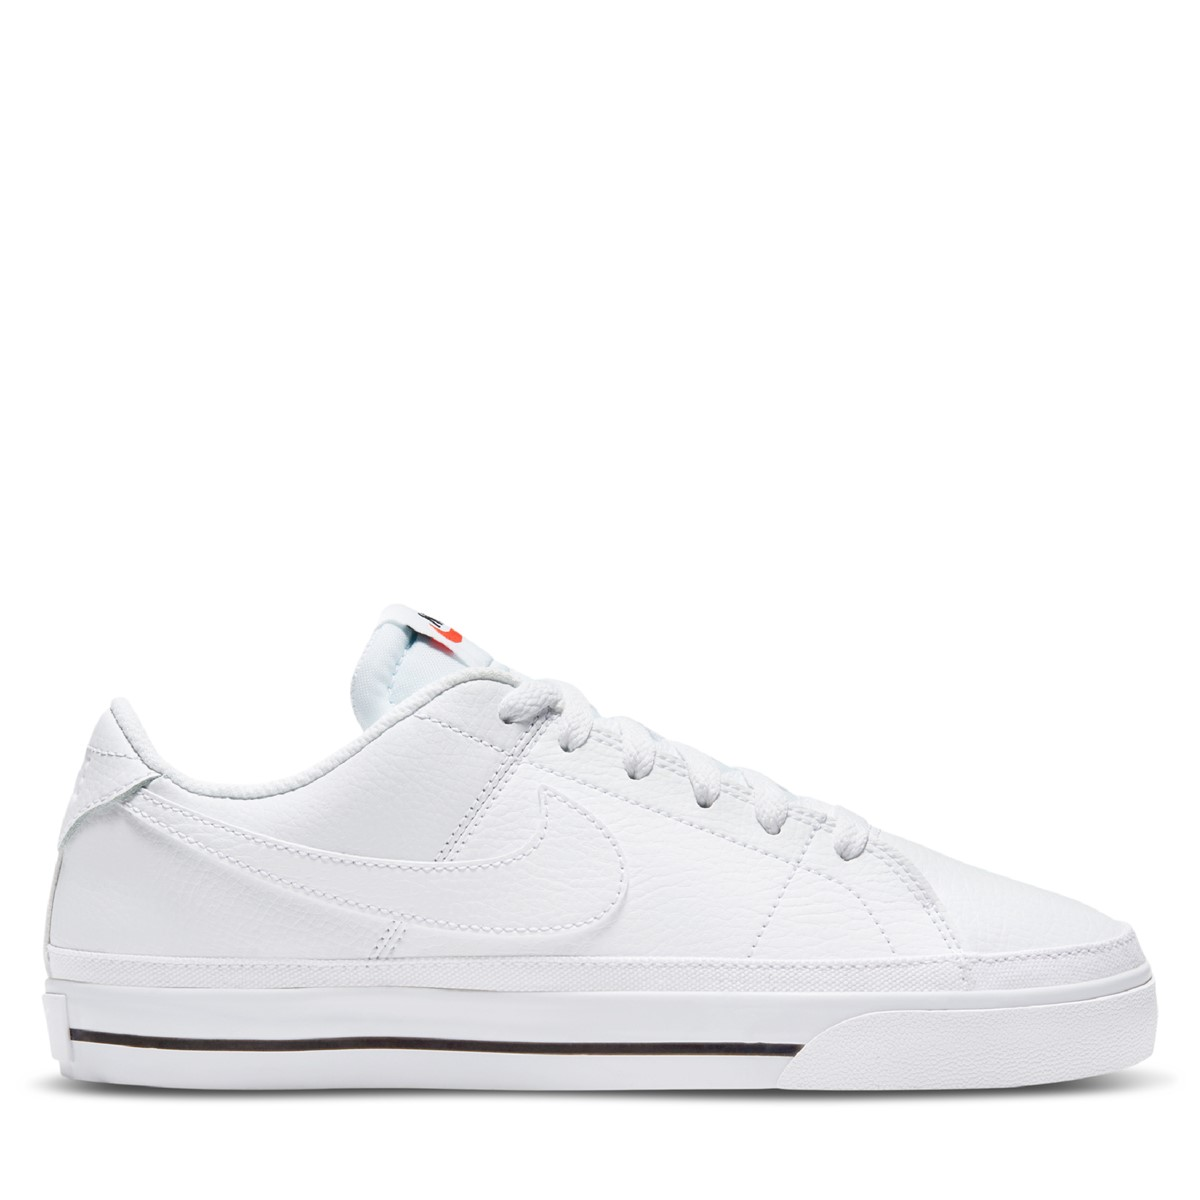 Women's Court Legacy Sneakers in White/ Black